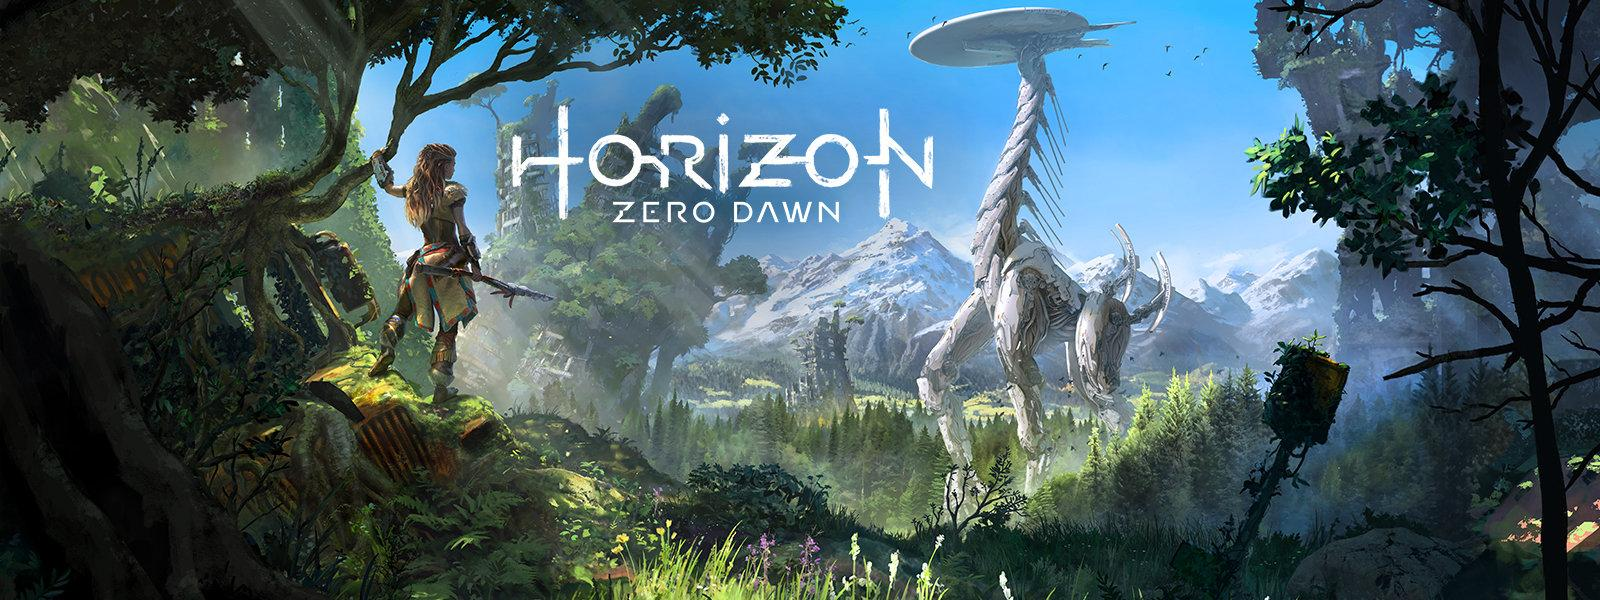 Via https://media.playstation.com/is/image/SCEA/horizon-zero-dawn-listing-thumb-01-ps4-us-23may16?$Icon$